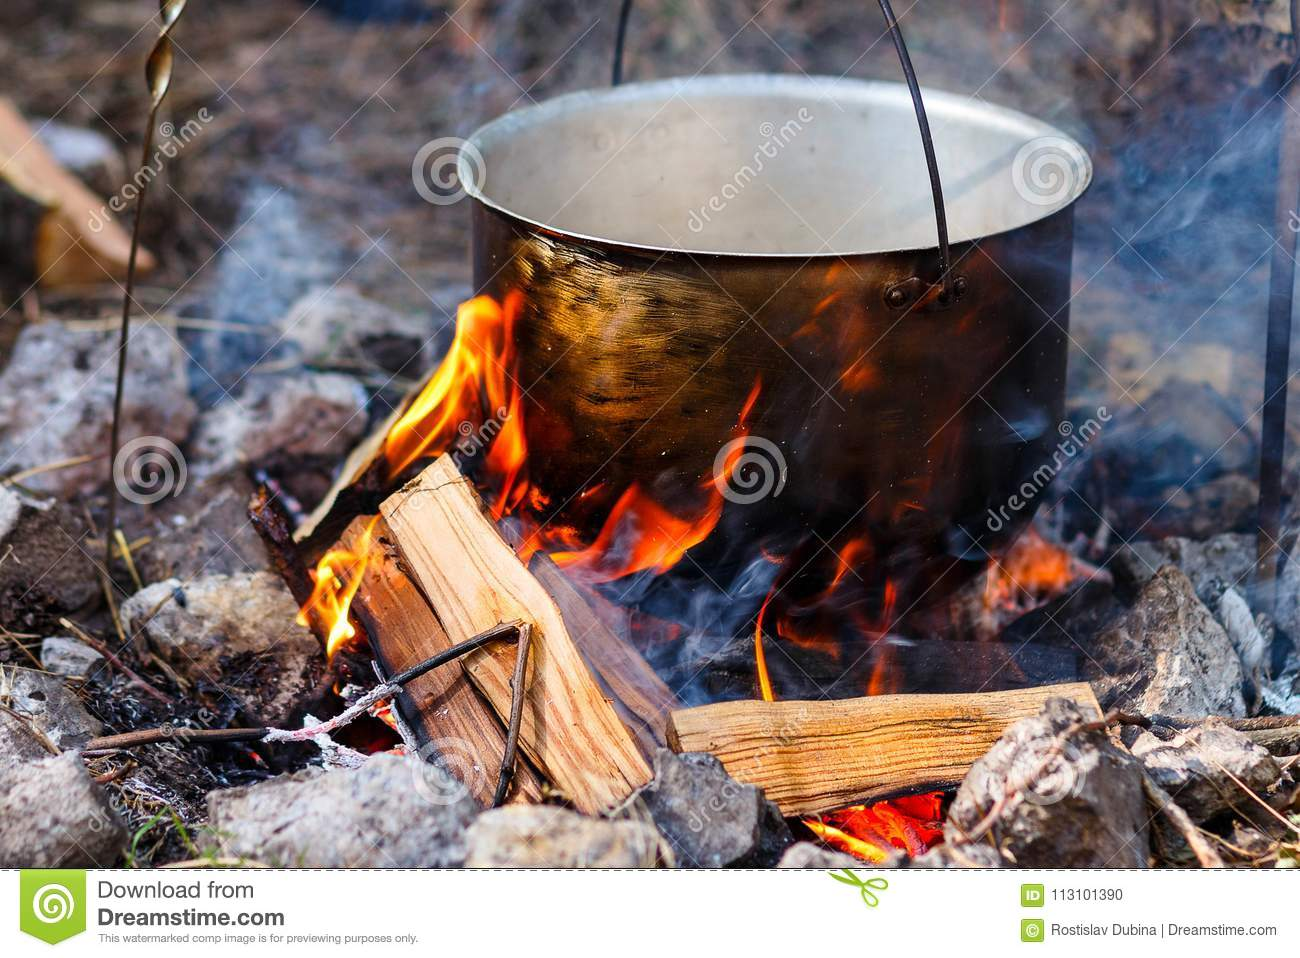 Iron Pot With Food On A Burning Fire  Food In A Metal